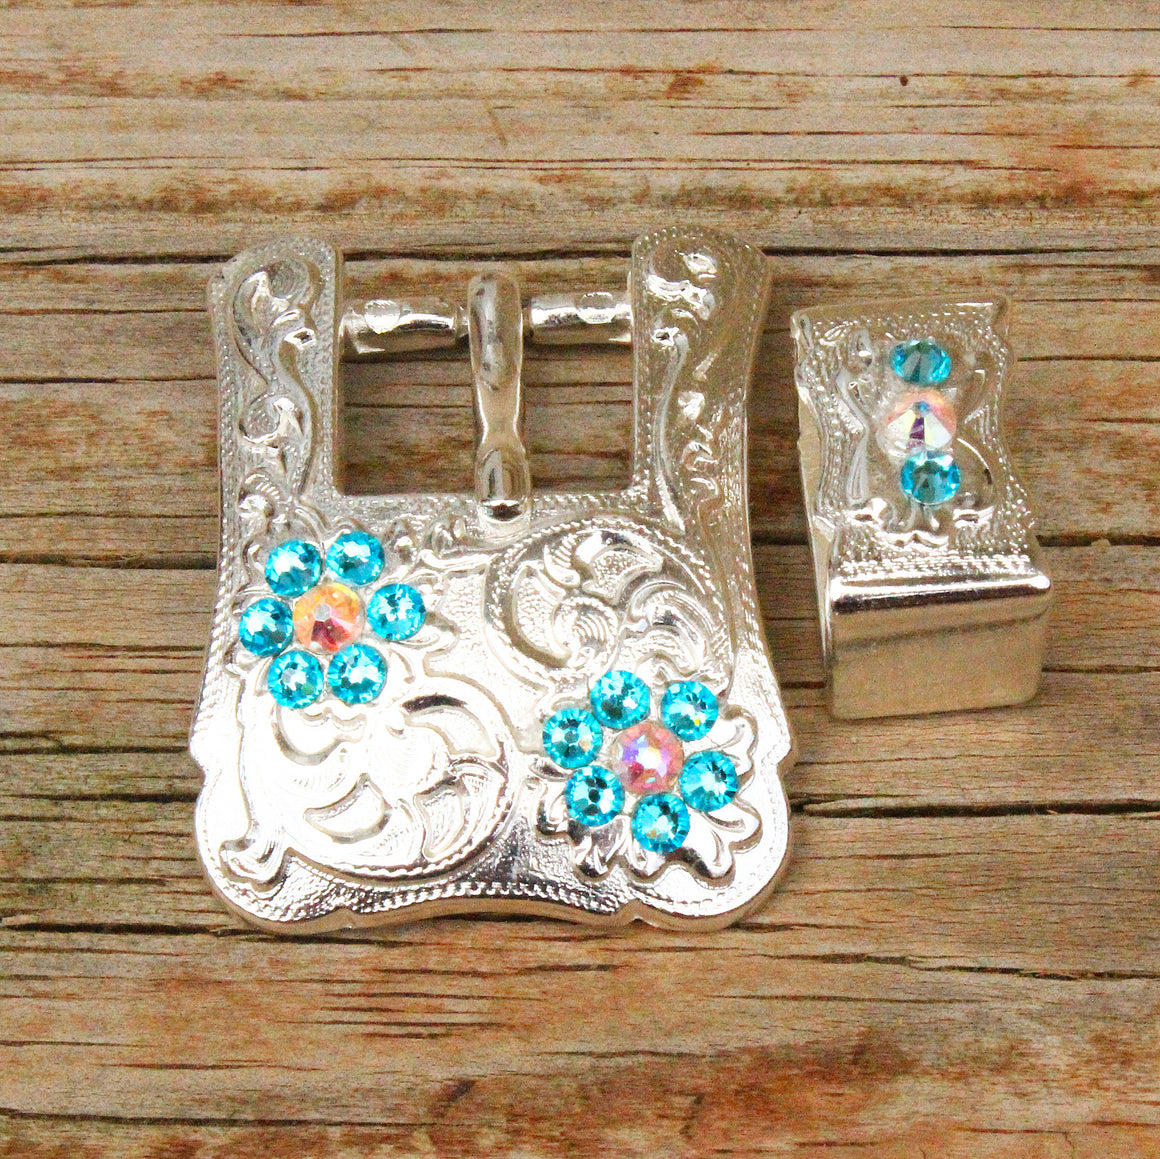 AB & Turquoise Bright Siver Conchos & Buckles